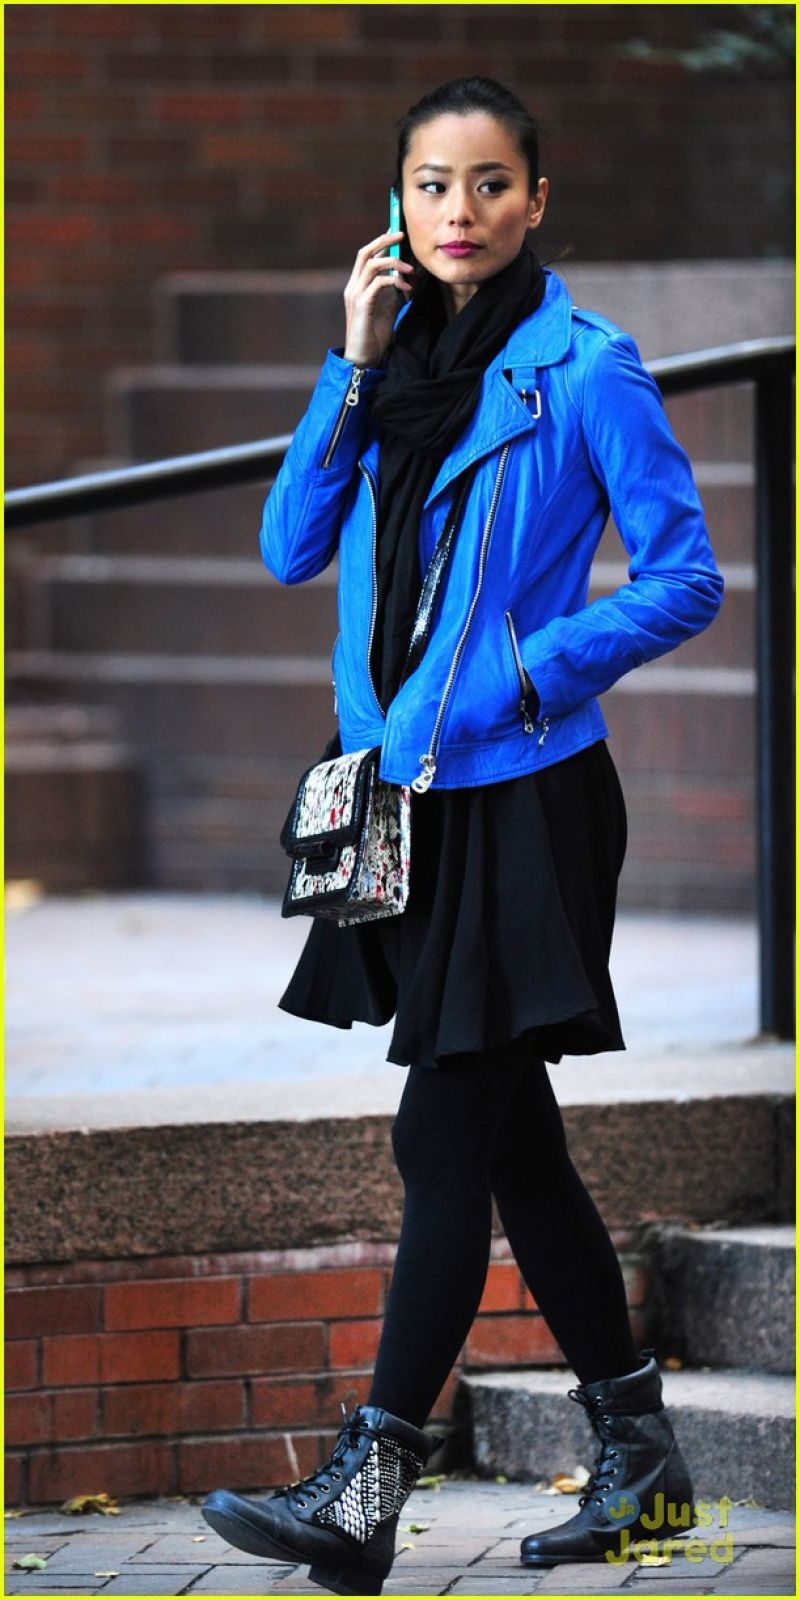 Chung Street Style - Candy in a Blue Jacket Out in New York City ...